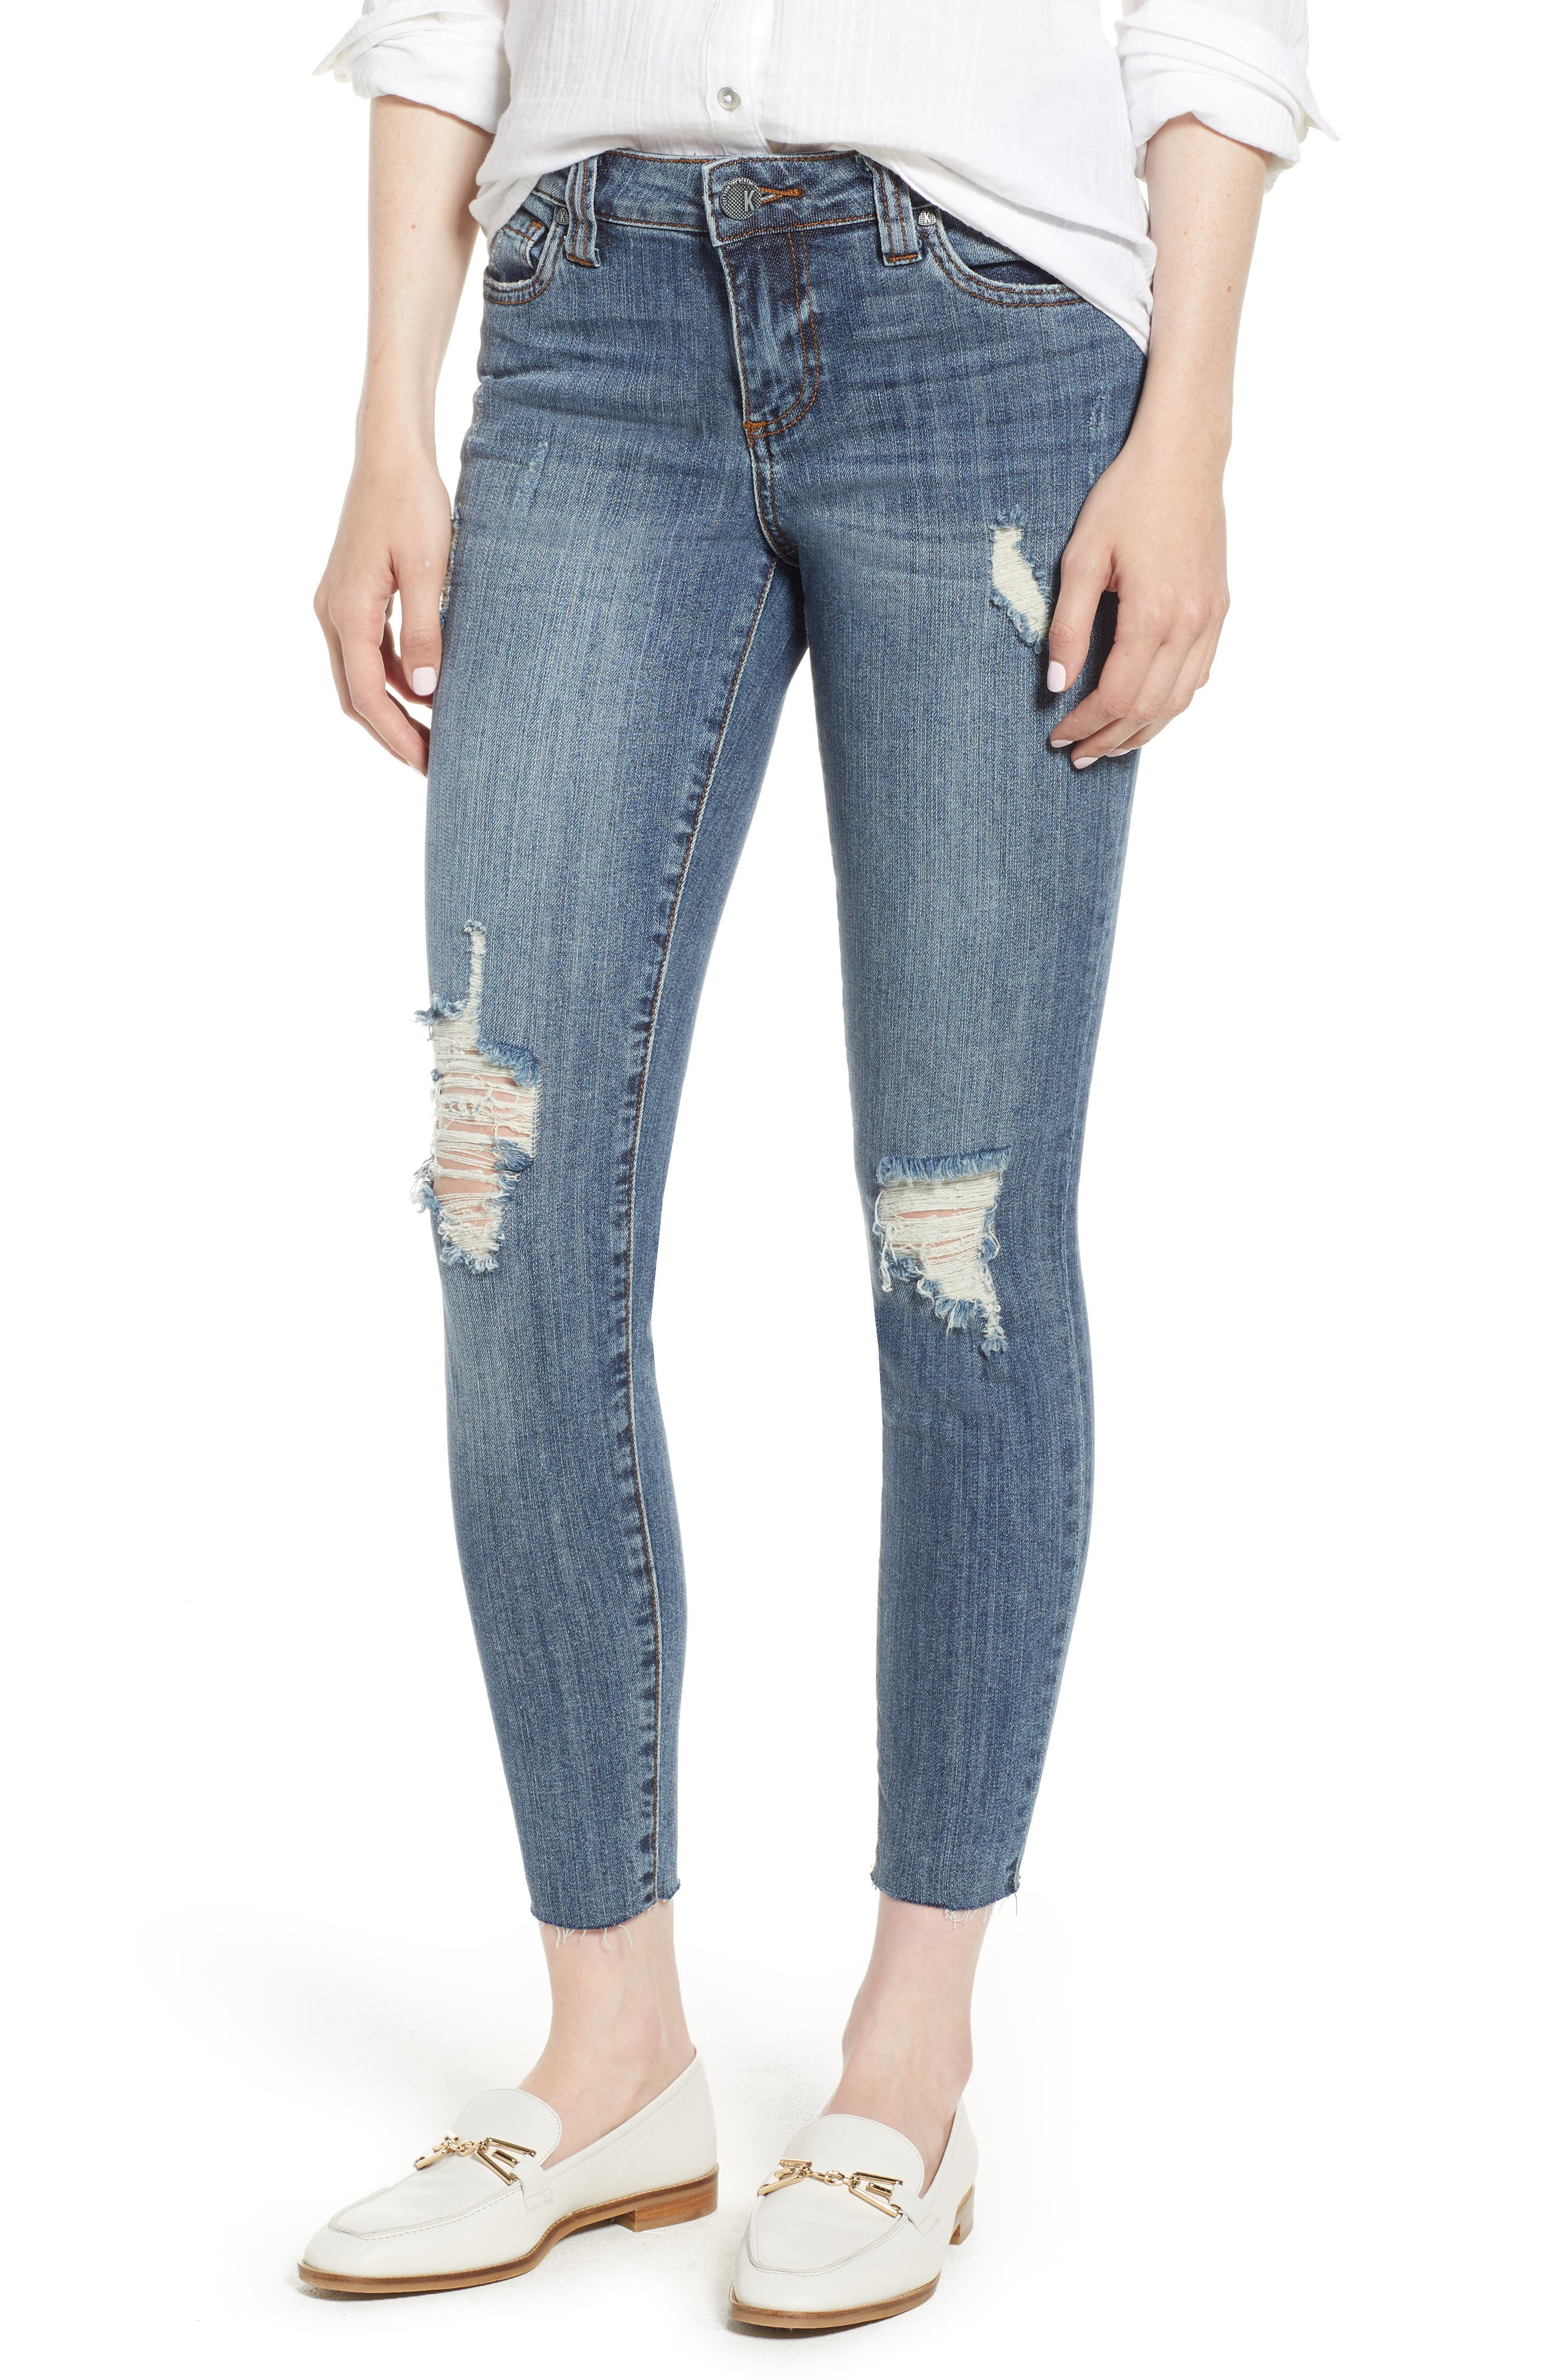 KUT from the Kloth Connie Raw Hem Ankle Jeans,                         Main,                         color, Refinement